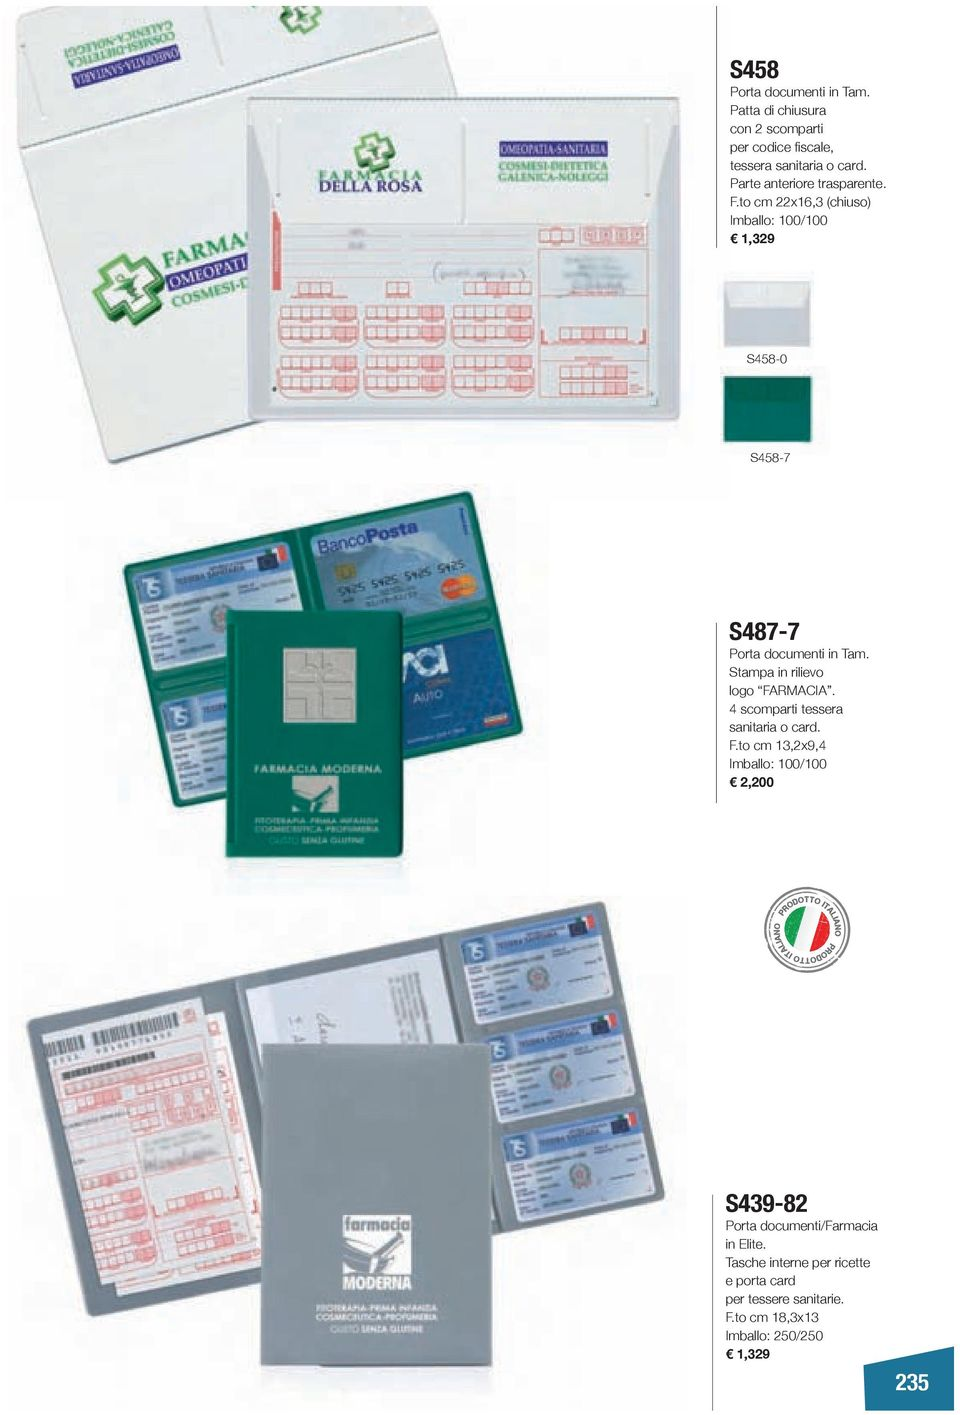 Stampa in rilievo logo FARMACIA. 4 scomparti tessera sanitaria o card. F.to cm 13,2x9,4 Imballo: 100/100 2,200 S439-82 Porta documenti/farmacia in Elite.